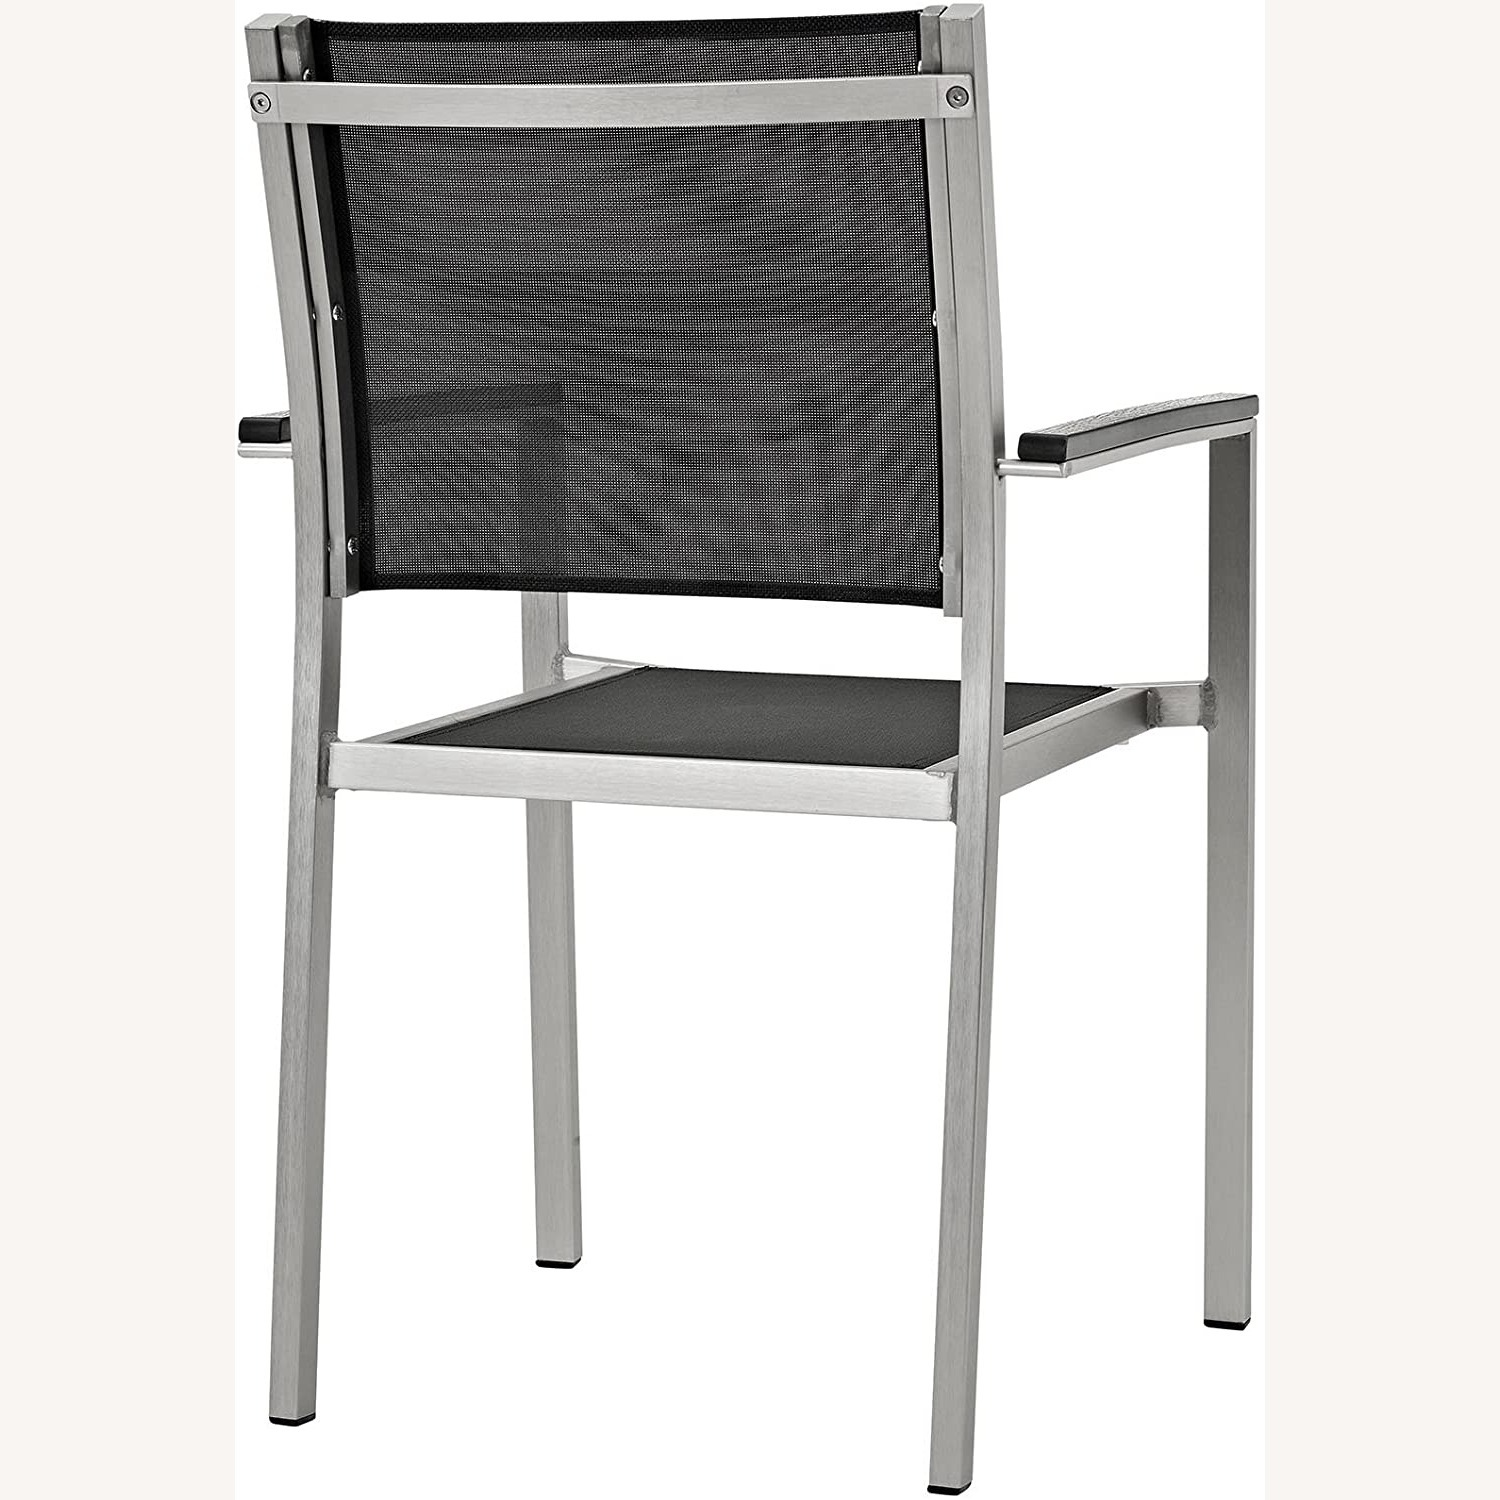 Outdoor Dining Chair In Black Mesh Finish - image-2